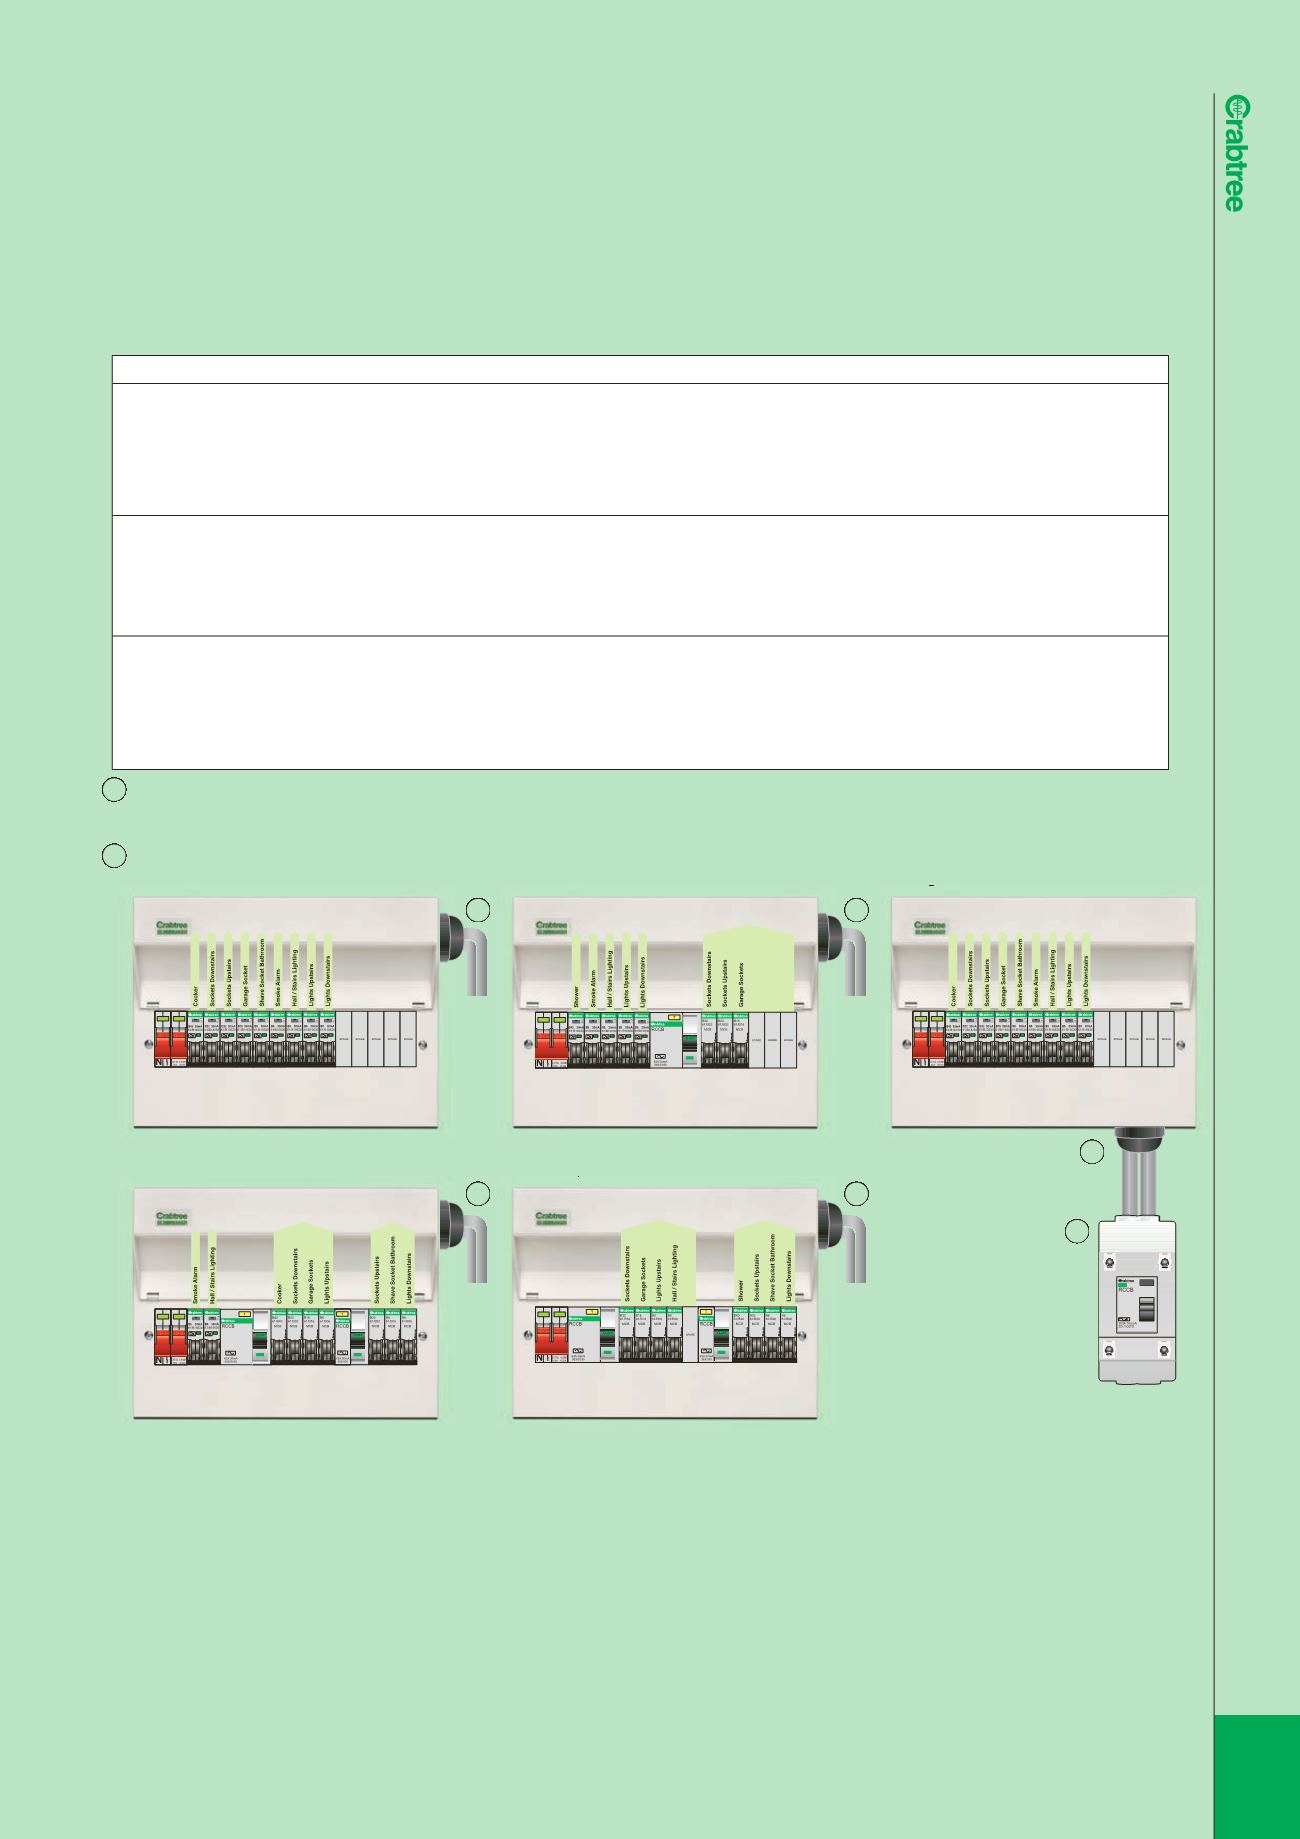 CONSUMER UNITS FOR USE IN DOMESTIC HOUSEHOLD PREMISES